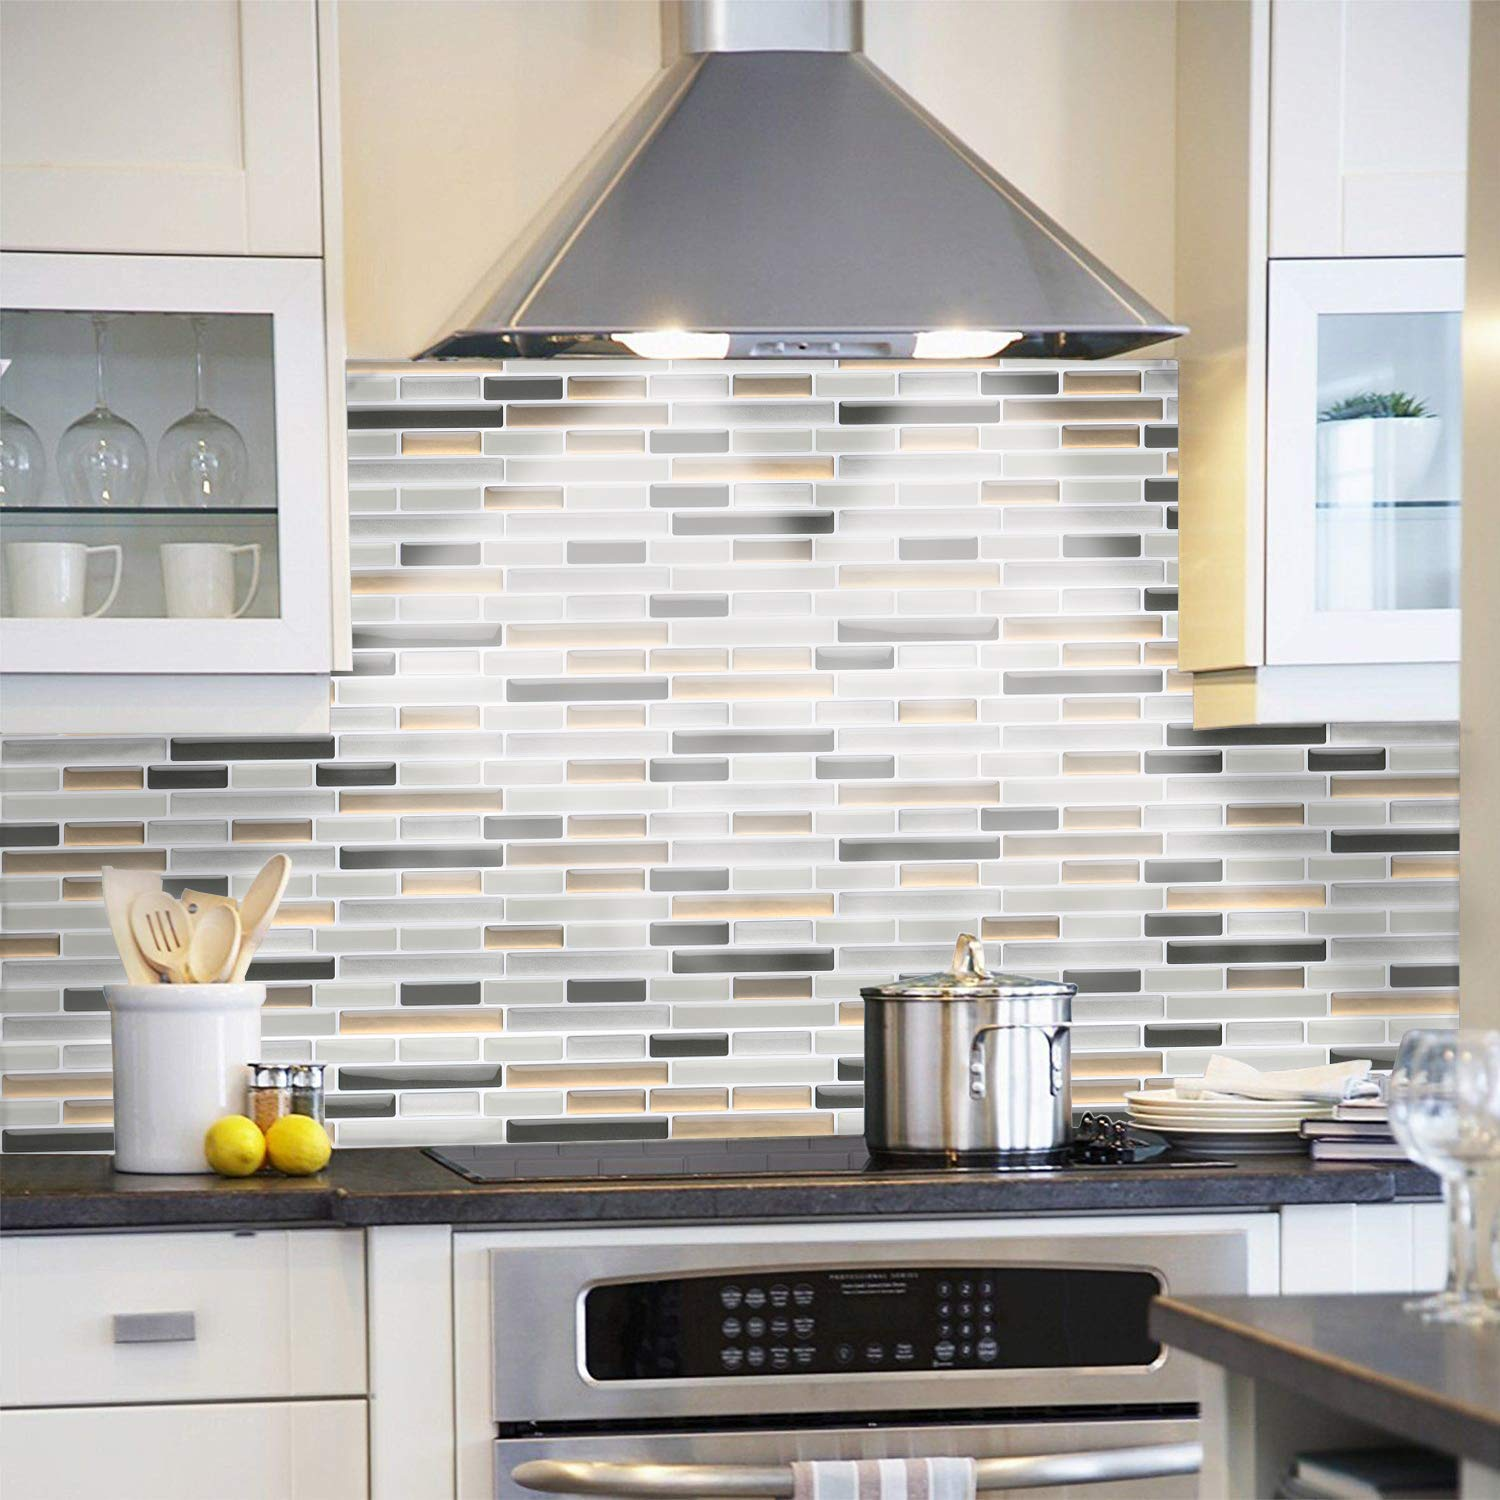 Peel and Stick Tile Backsplash for Kitchen Bathroom, Stick on Wall ...